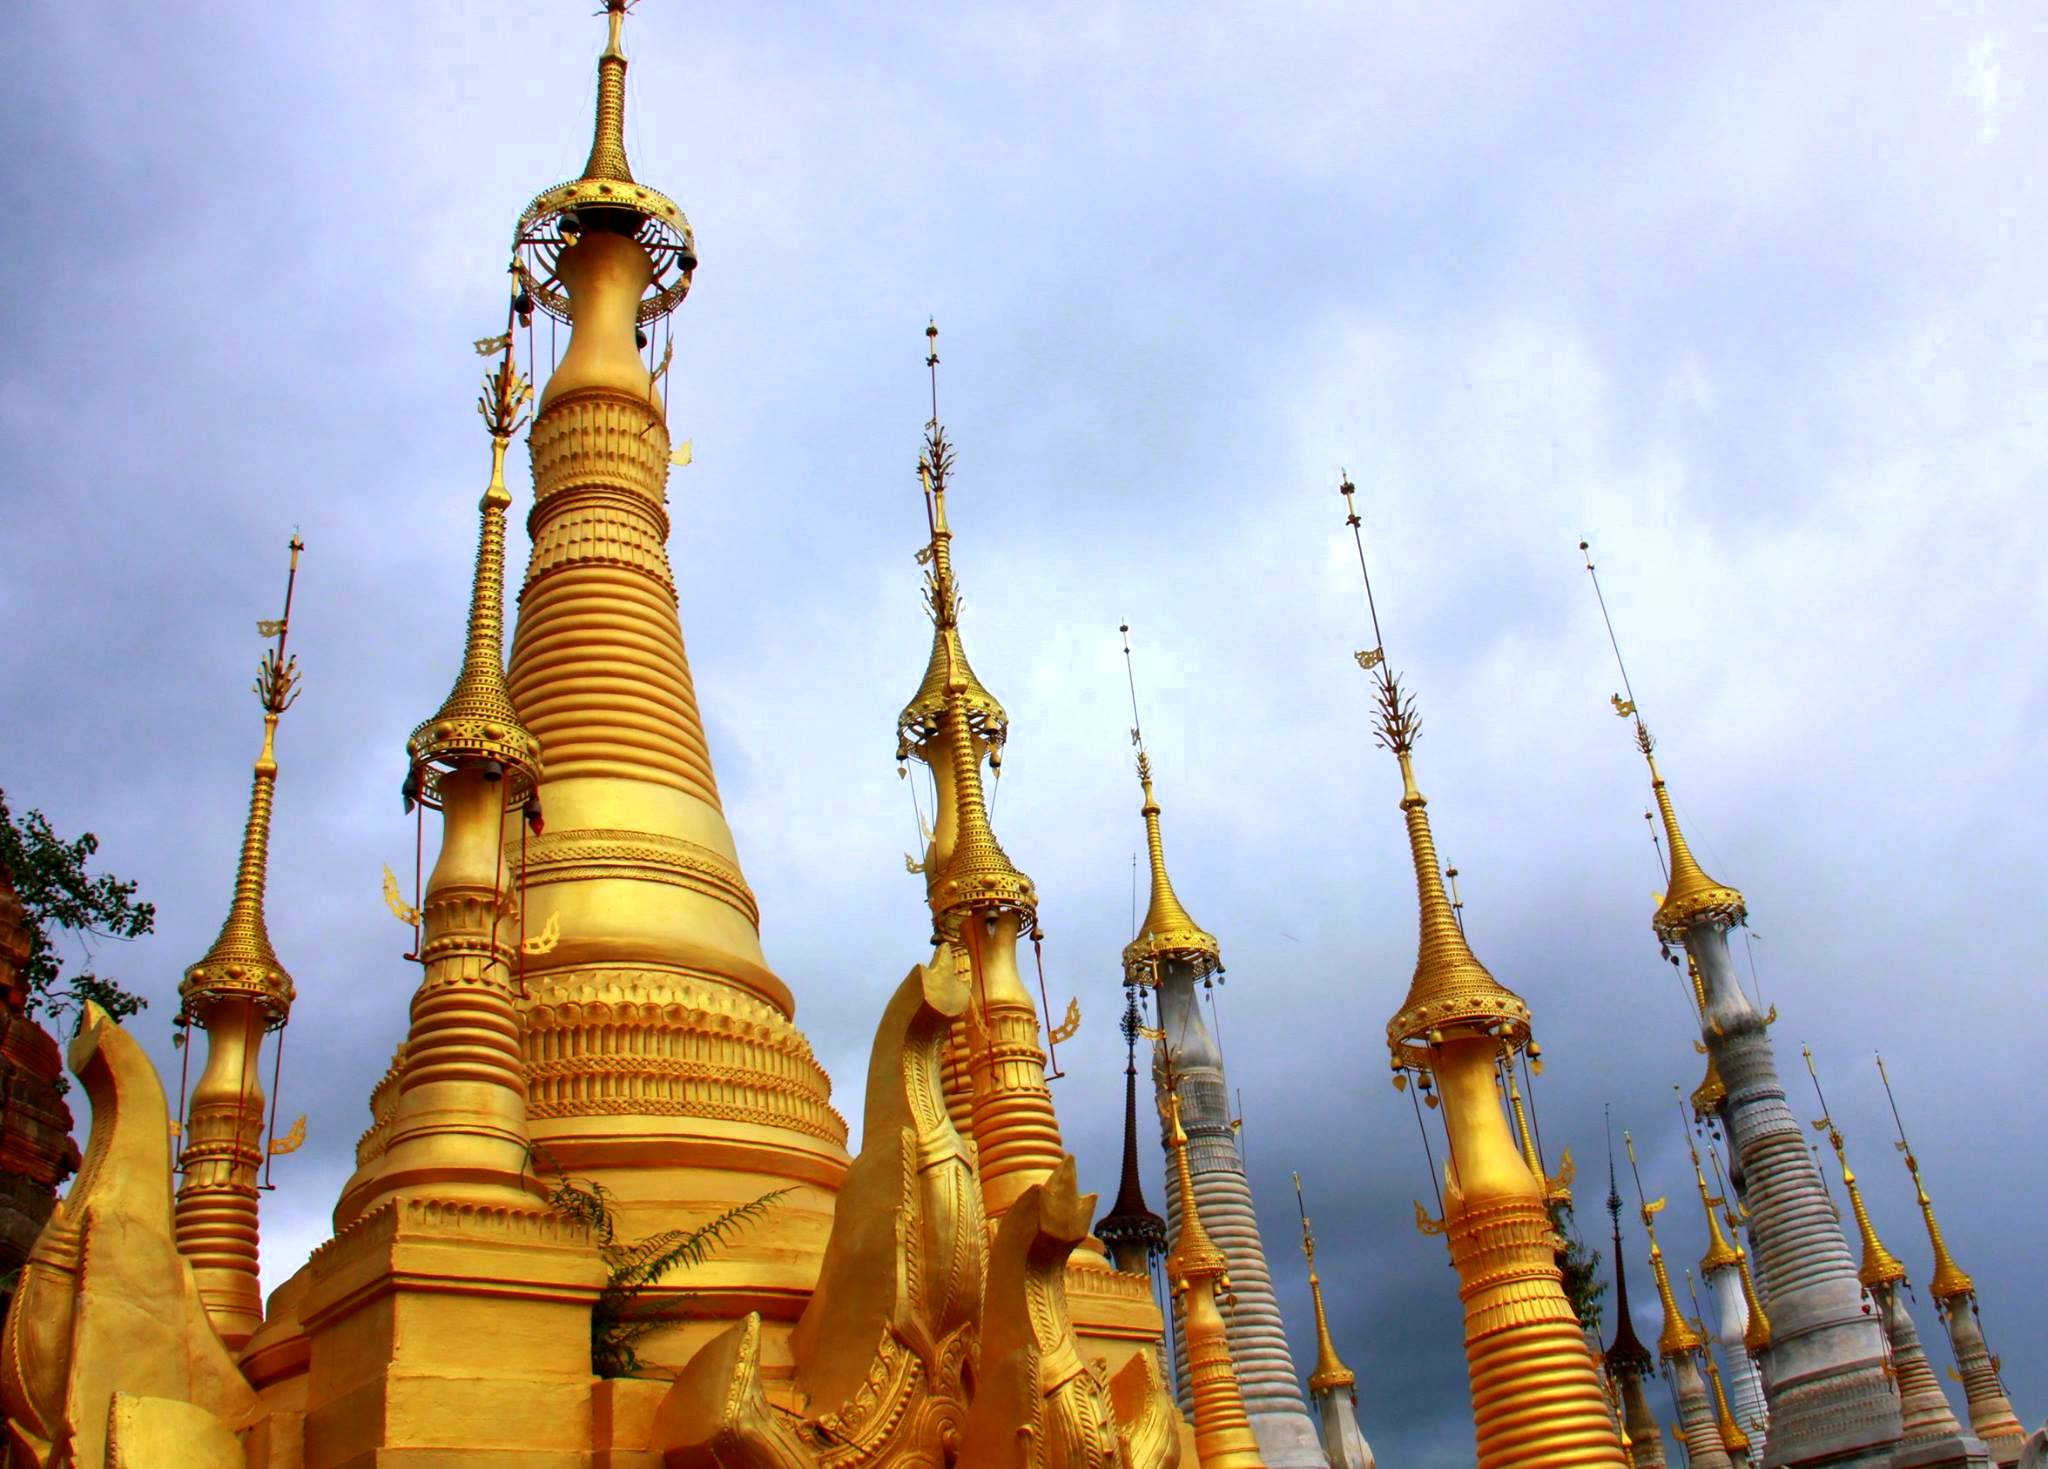 The pagodas of Indein is a big attraction